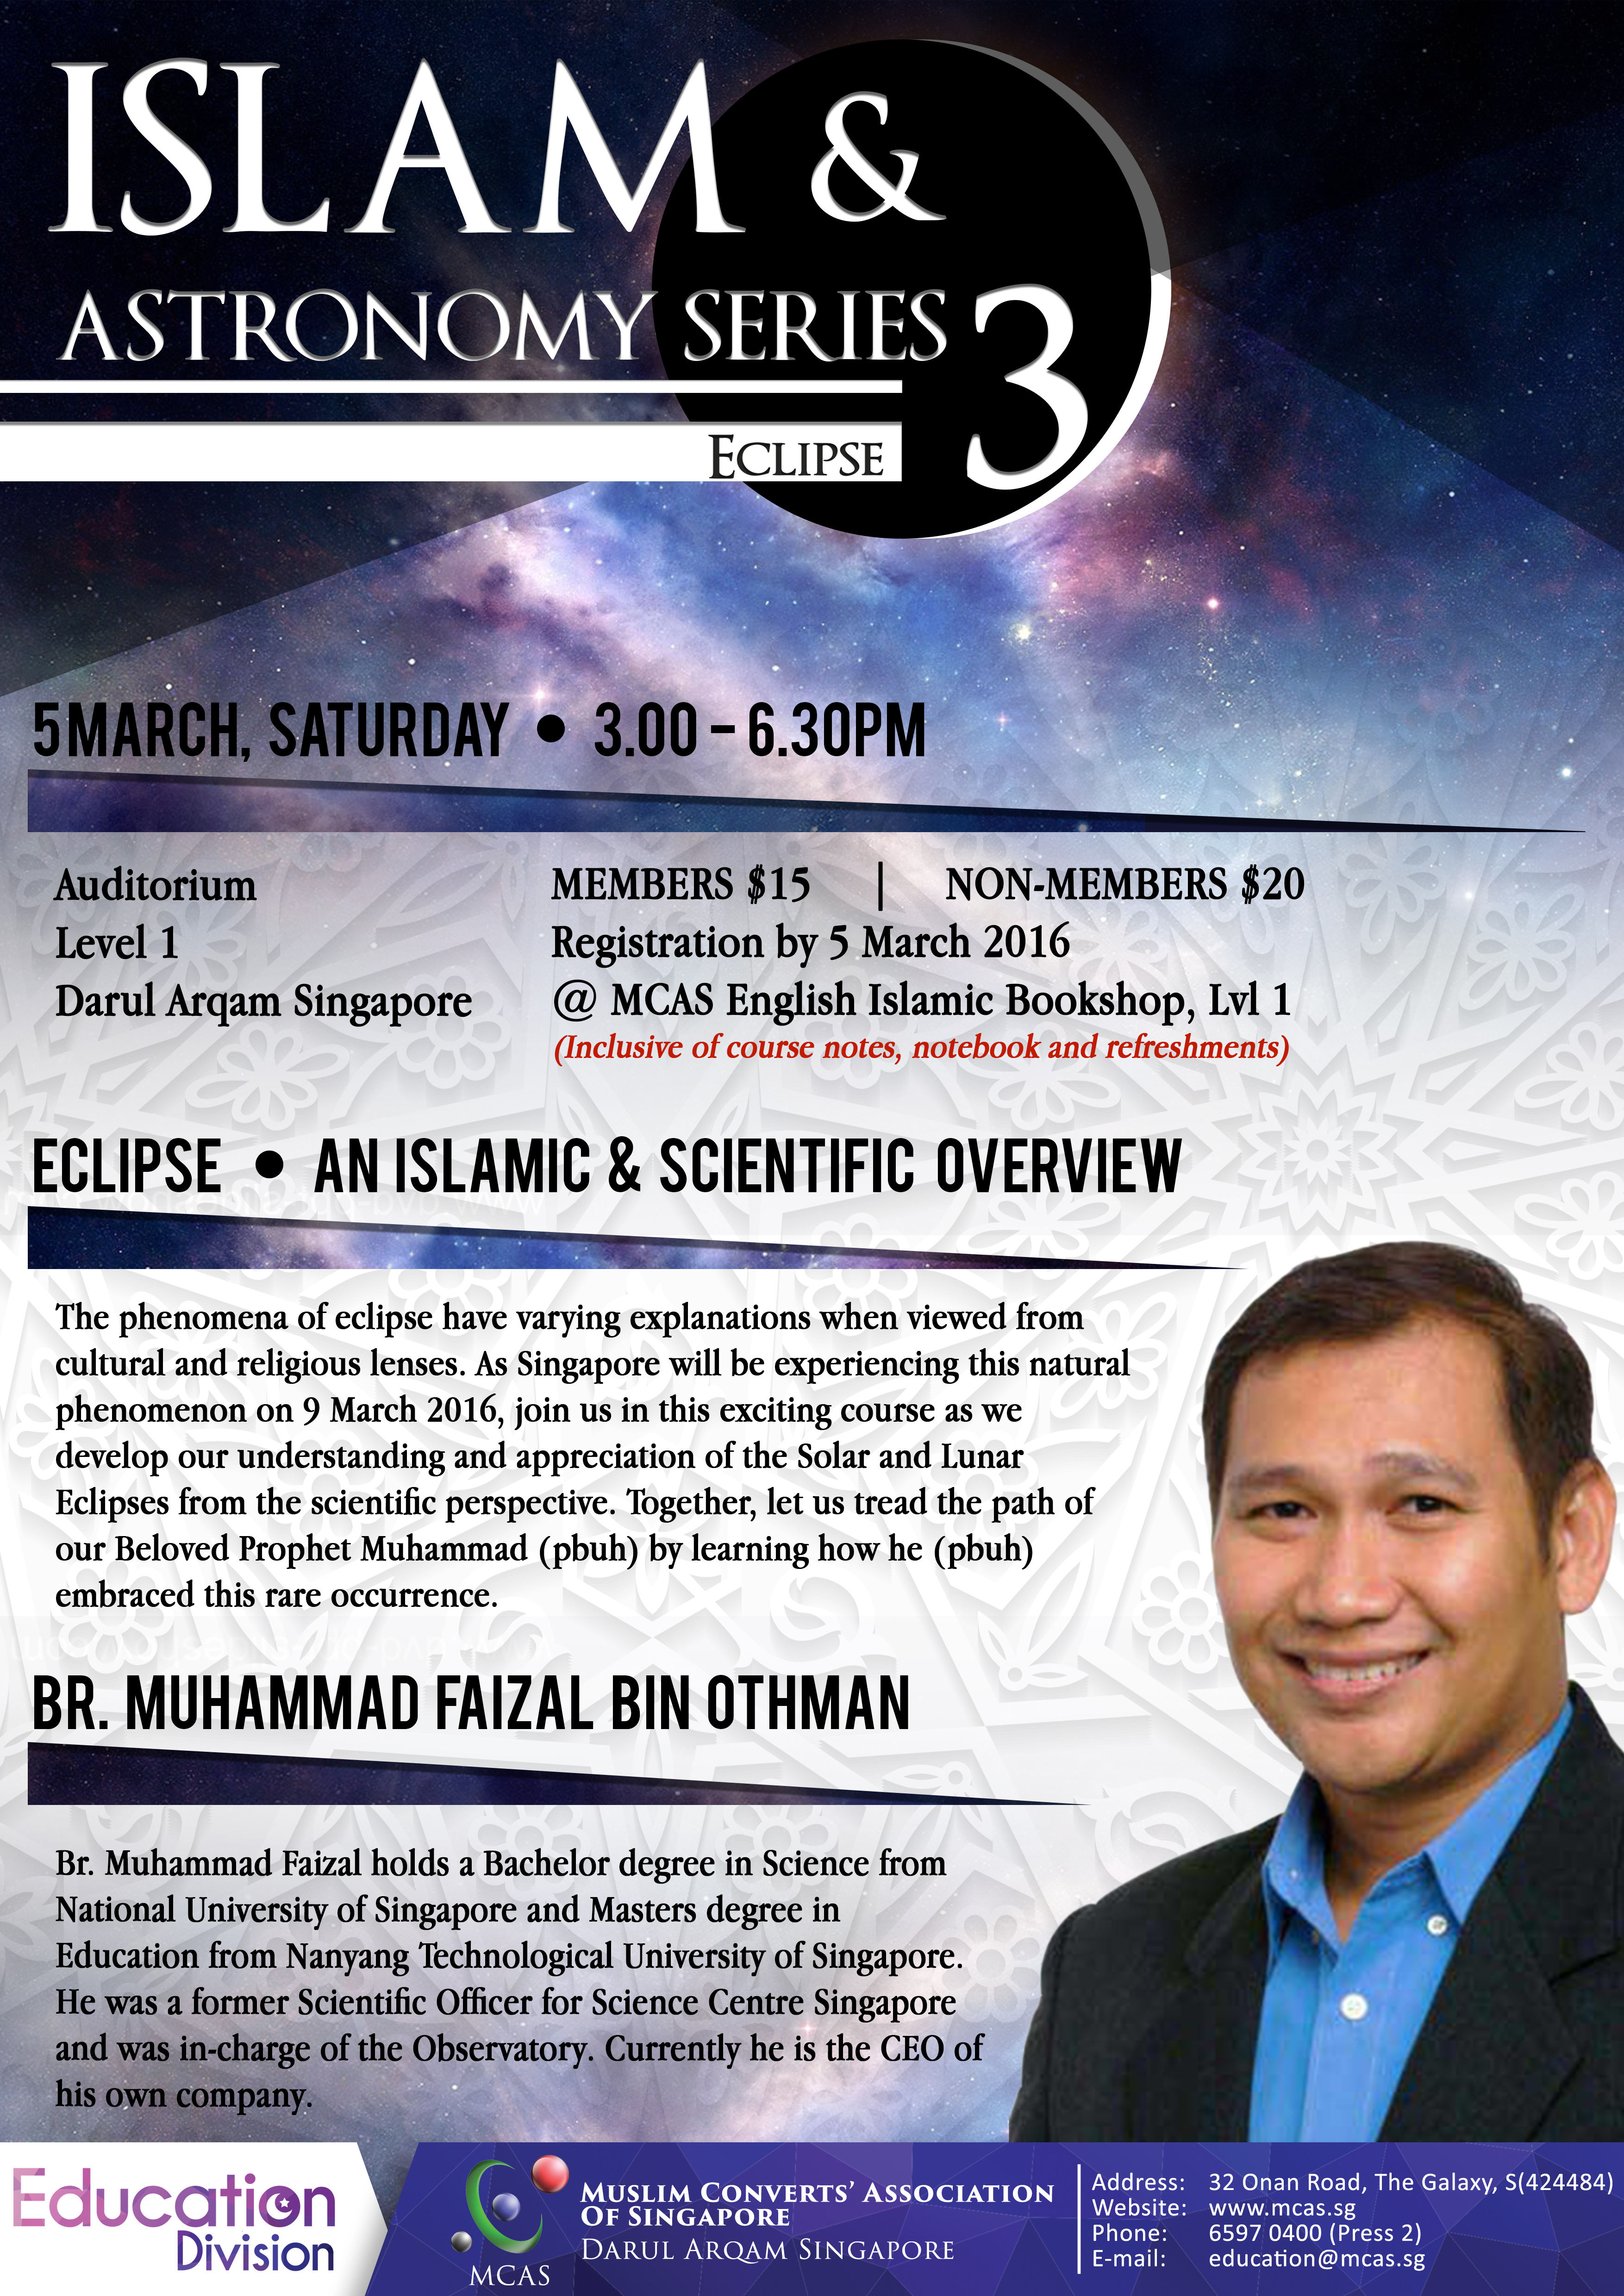 Islam & Astronomy Series 3 (Informational Poster)